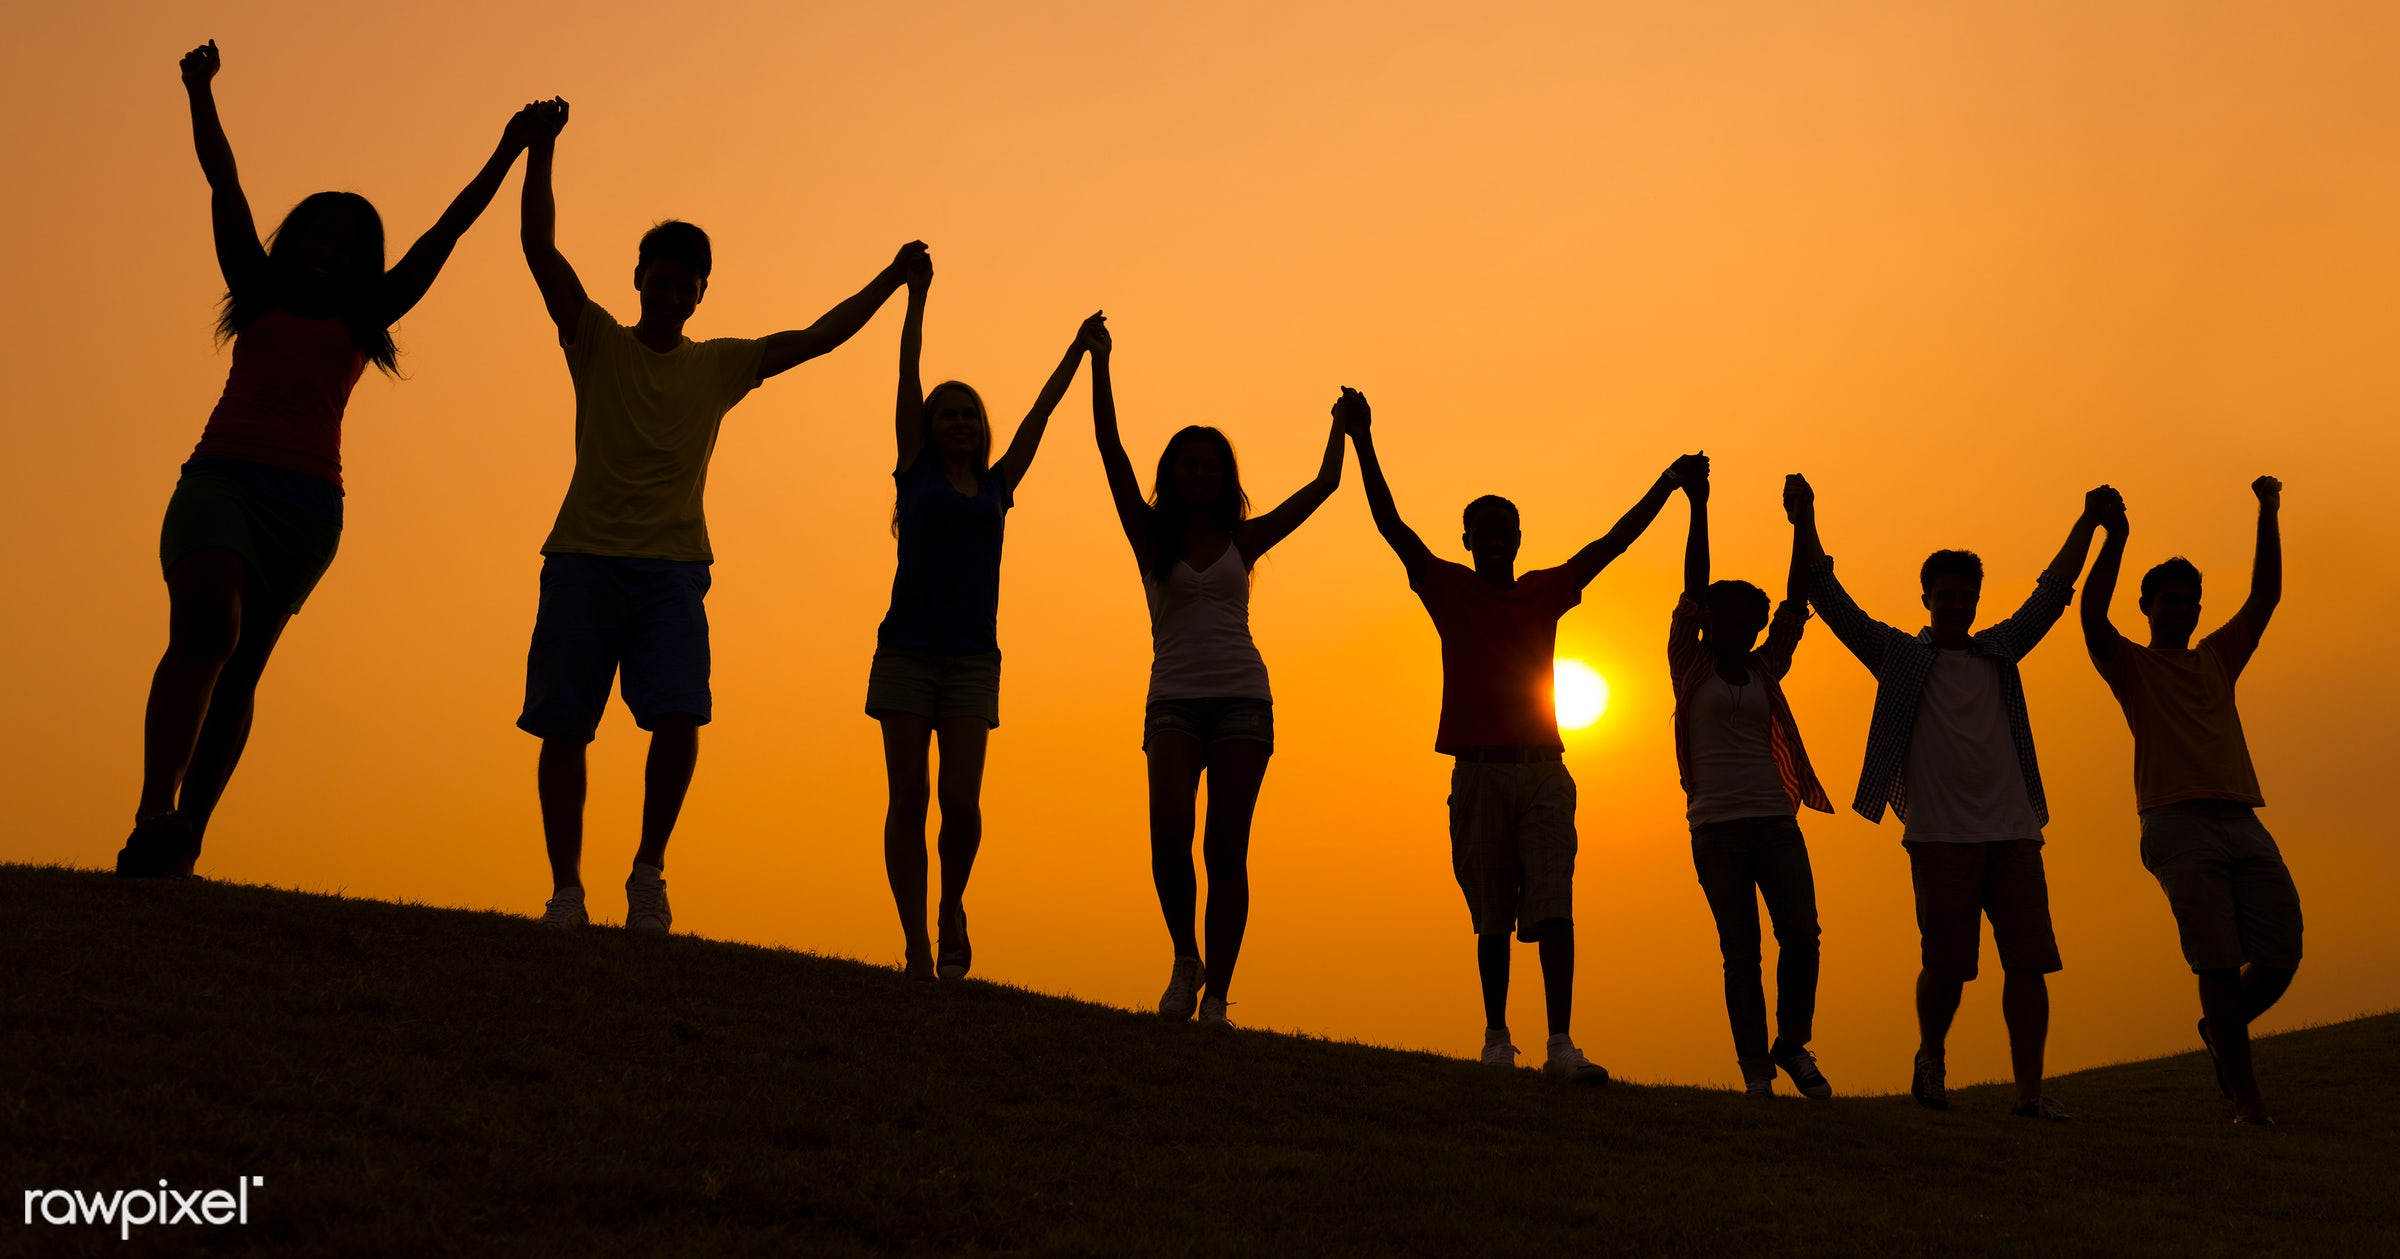 achievement, arms outstretched, arms raised, casual, celebration, cheerful, color image, community, teamwork, group of...